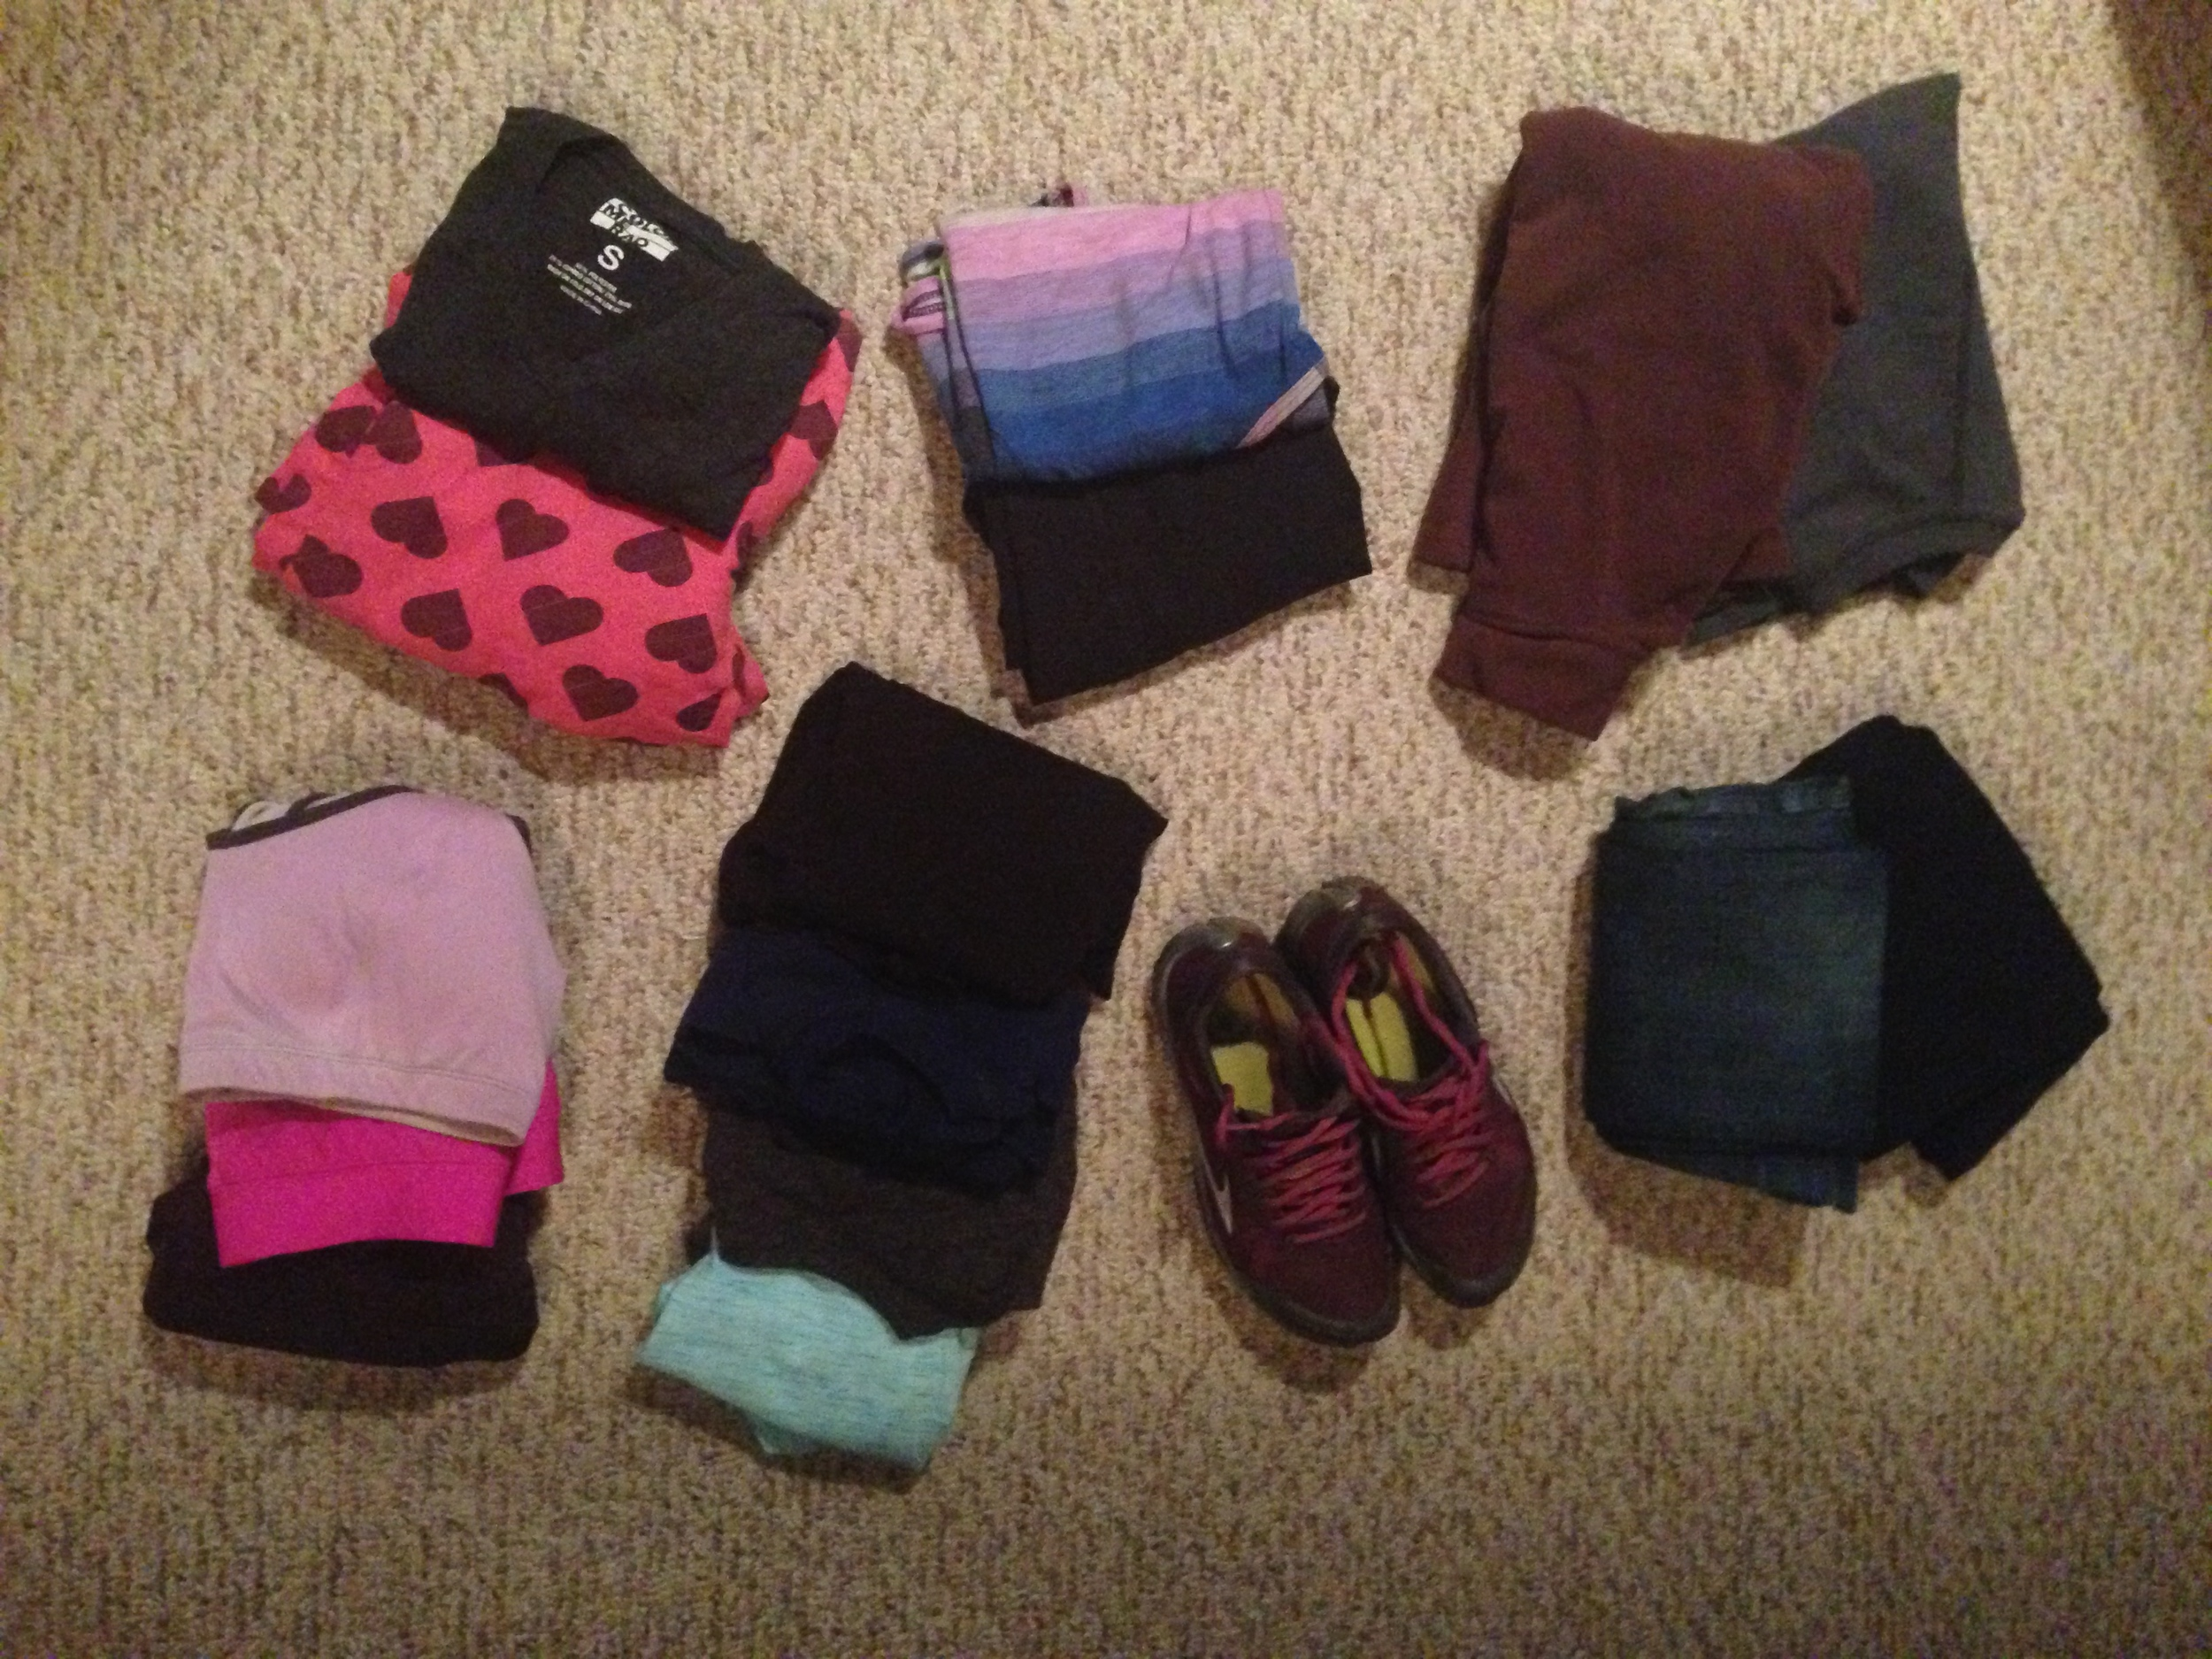 Left to right, top to bottom: PJ pants and two pairs of tee shirts, workout outfit, two sweaters (wound up only packing one and a not-pictured jacket), sports bras, five shirts (one long-sleeve, one 3/4 sleeve, three short-sleeved), walking shoes, two pairs of jeans (one medium-wash, one dark wash).